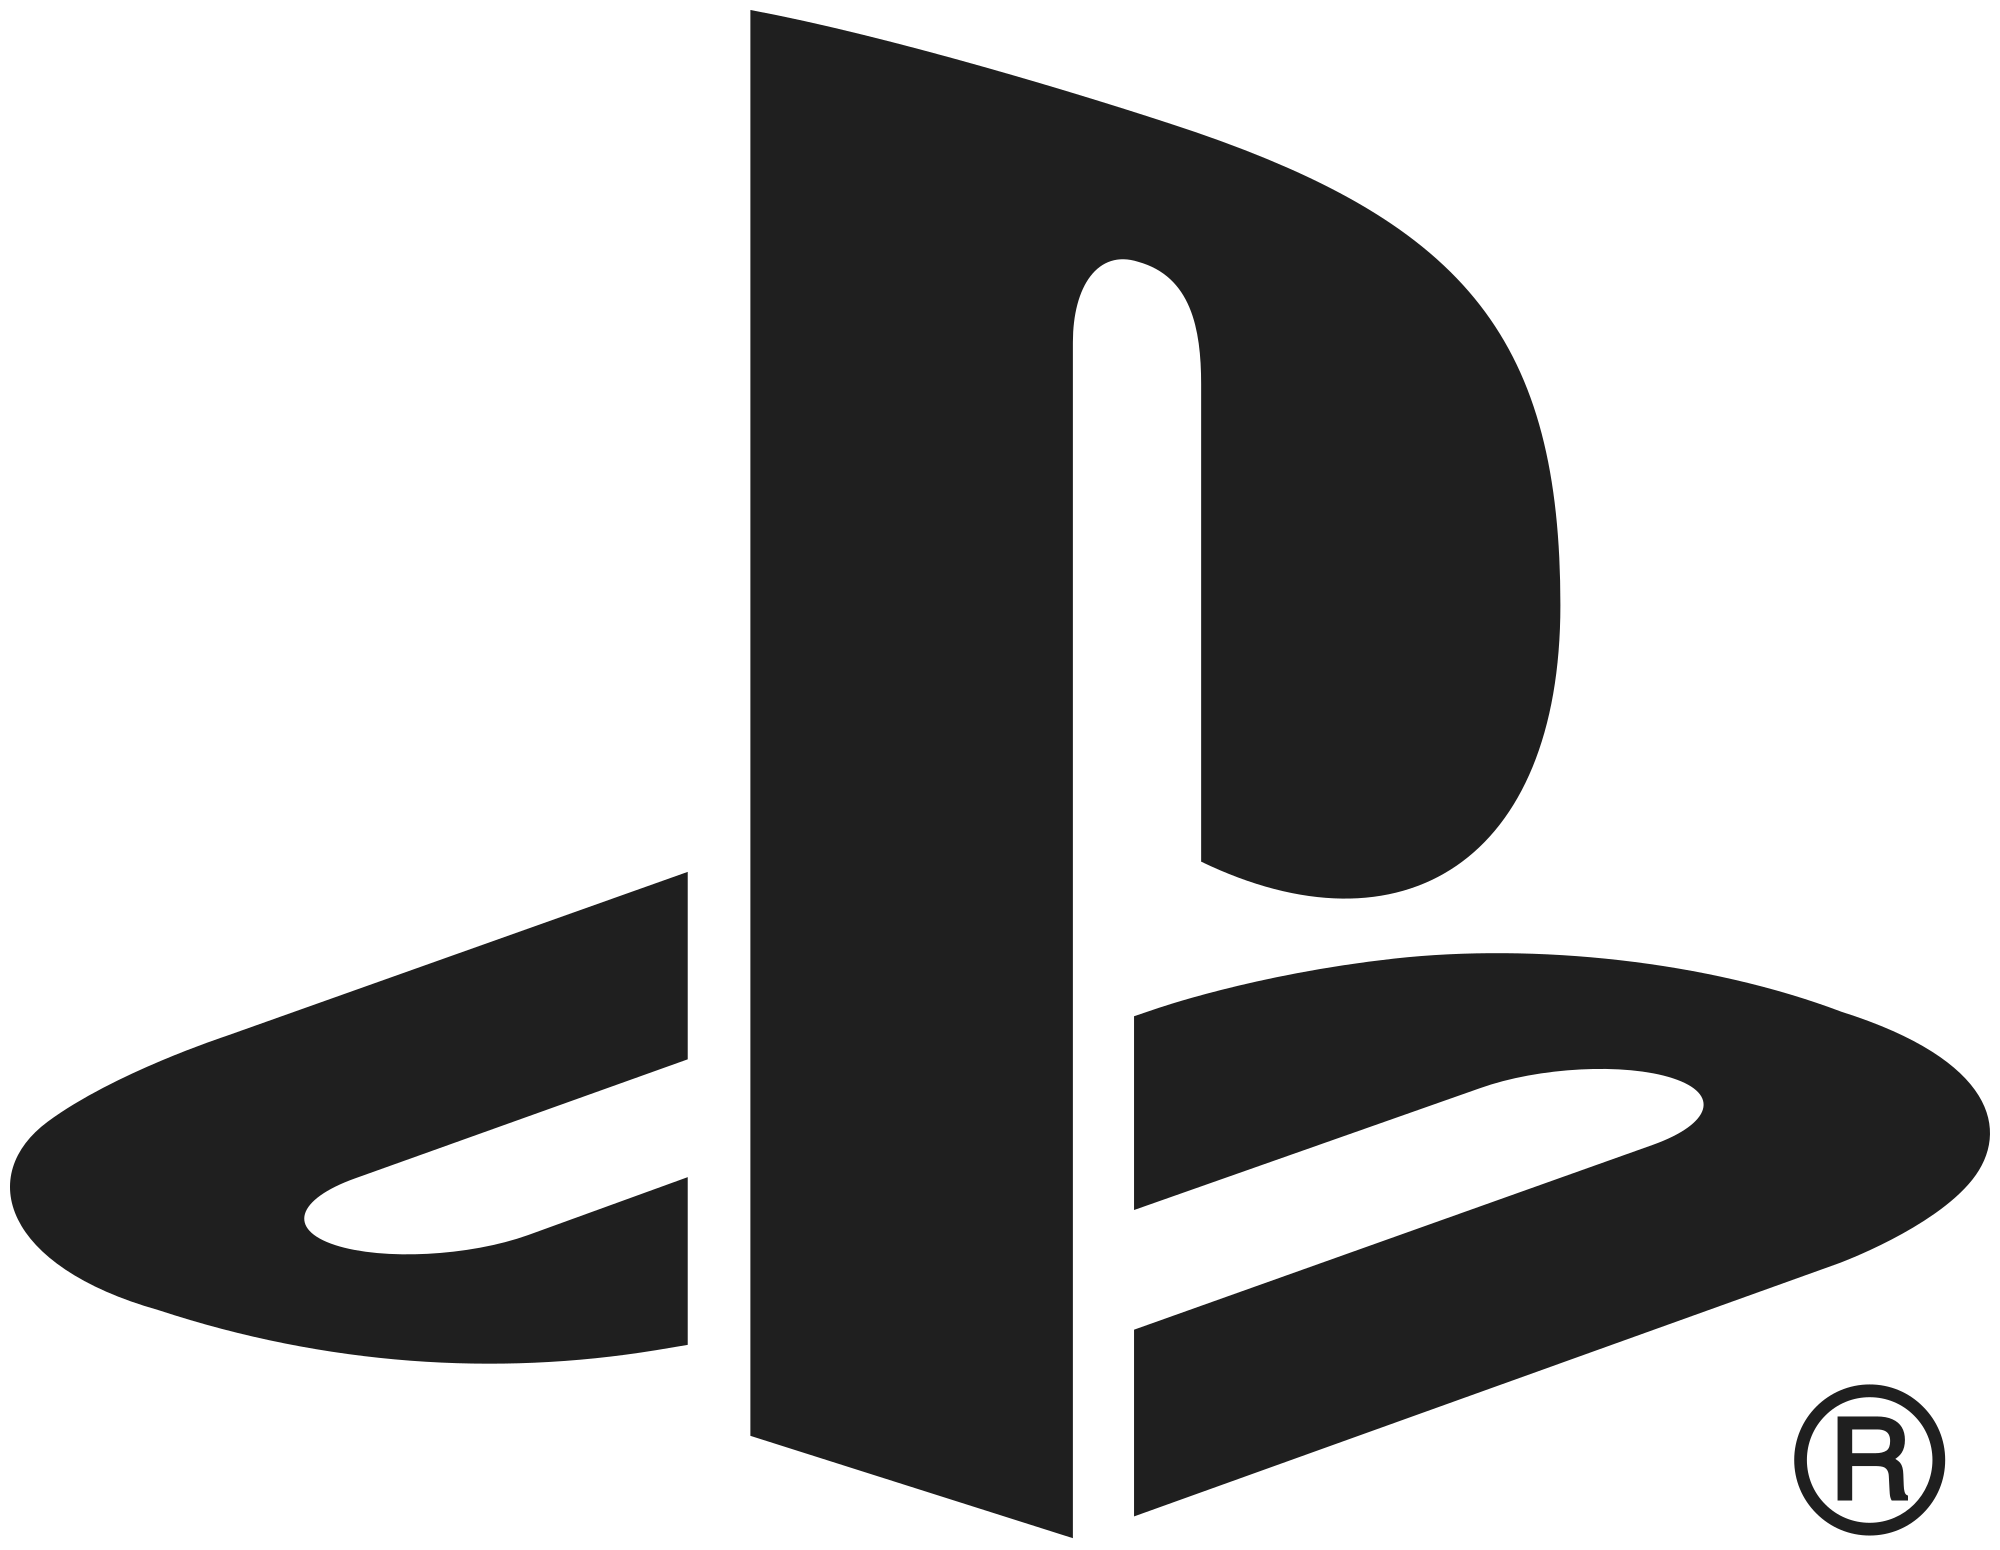 Open Hdpng.com  - Playstation, Transparent background PNG HD thumbnail